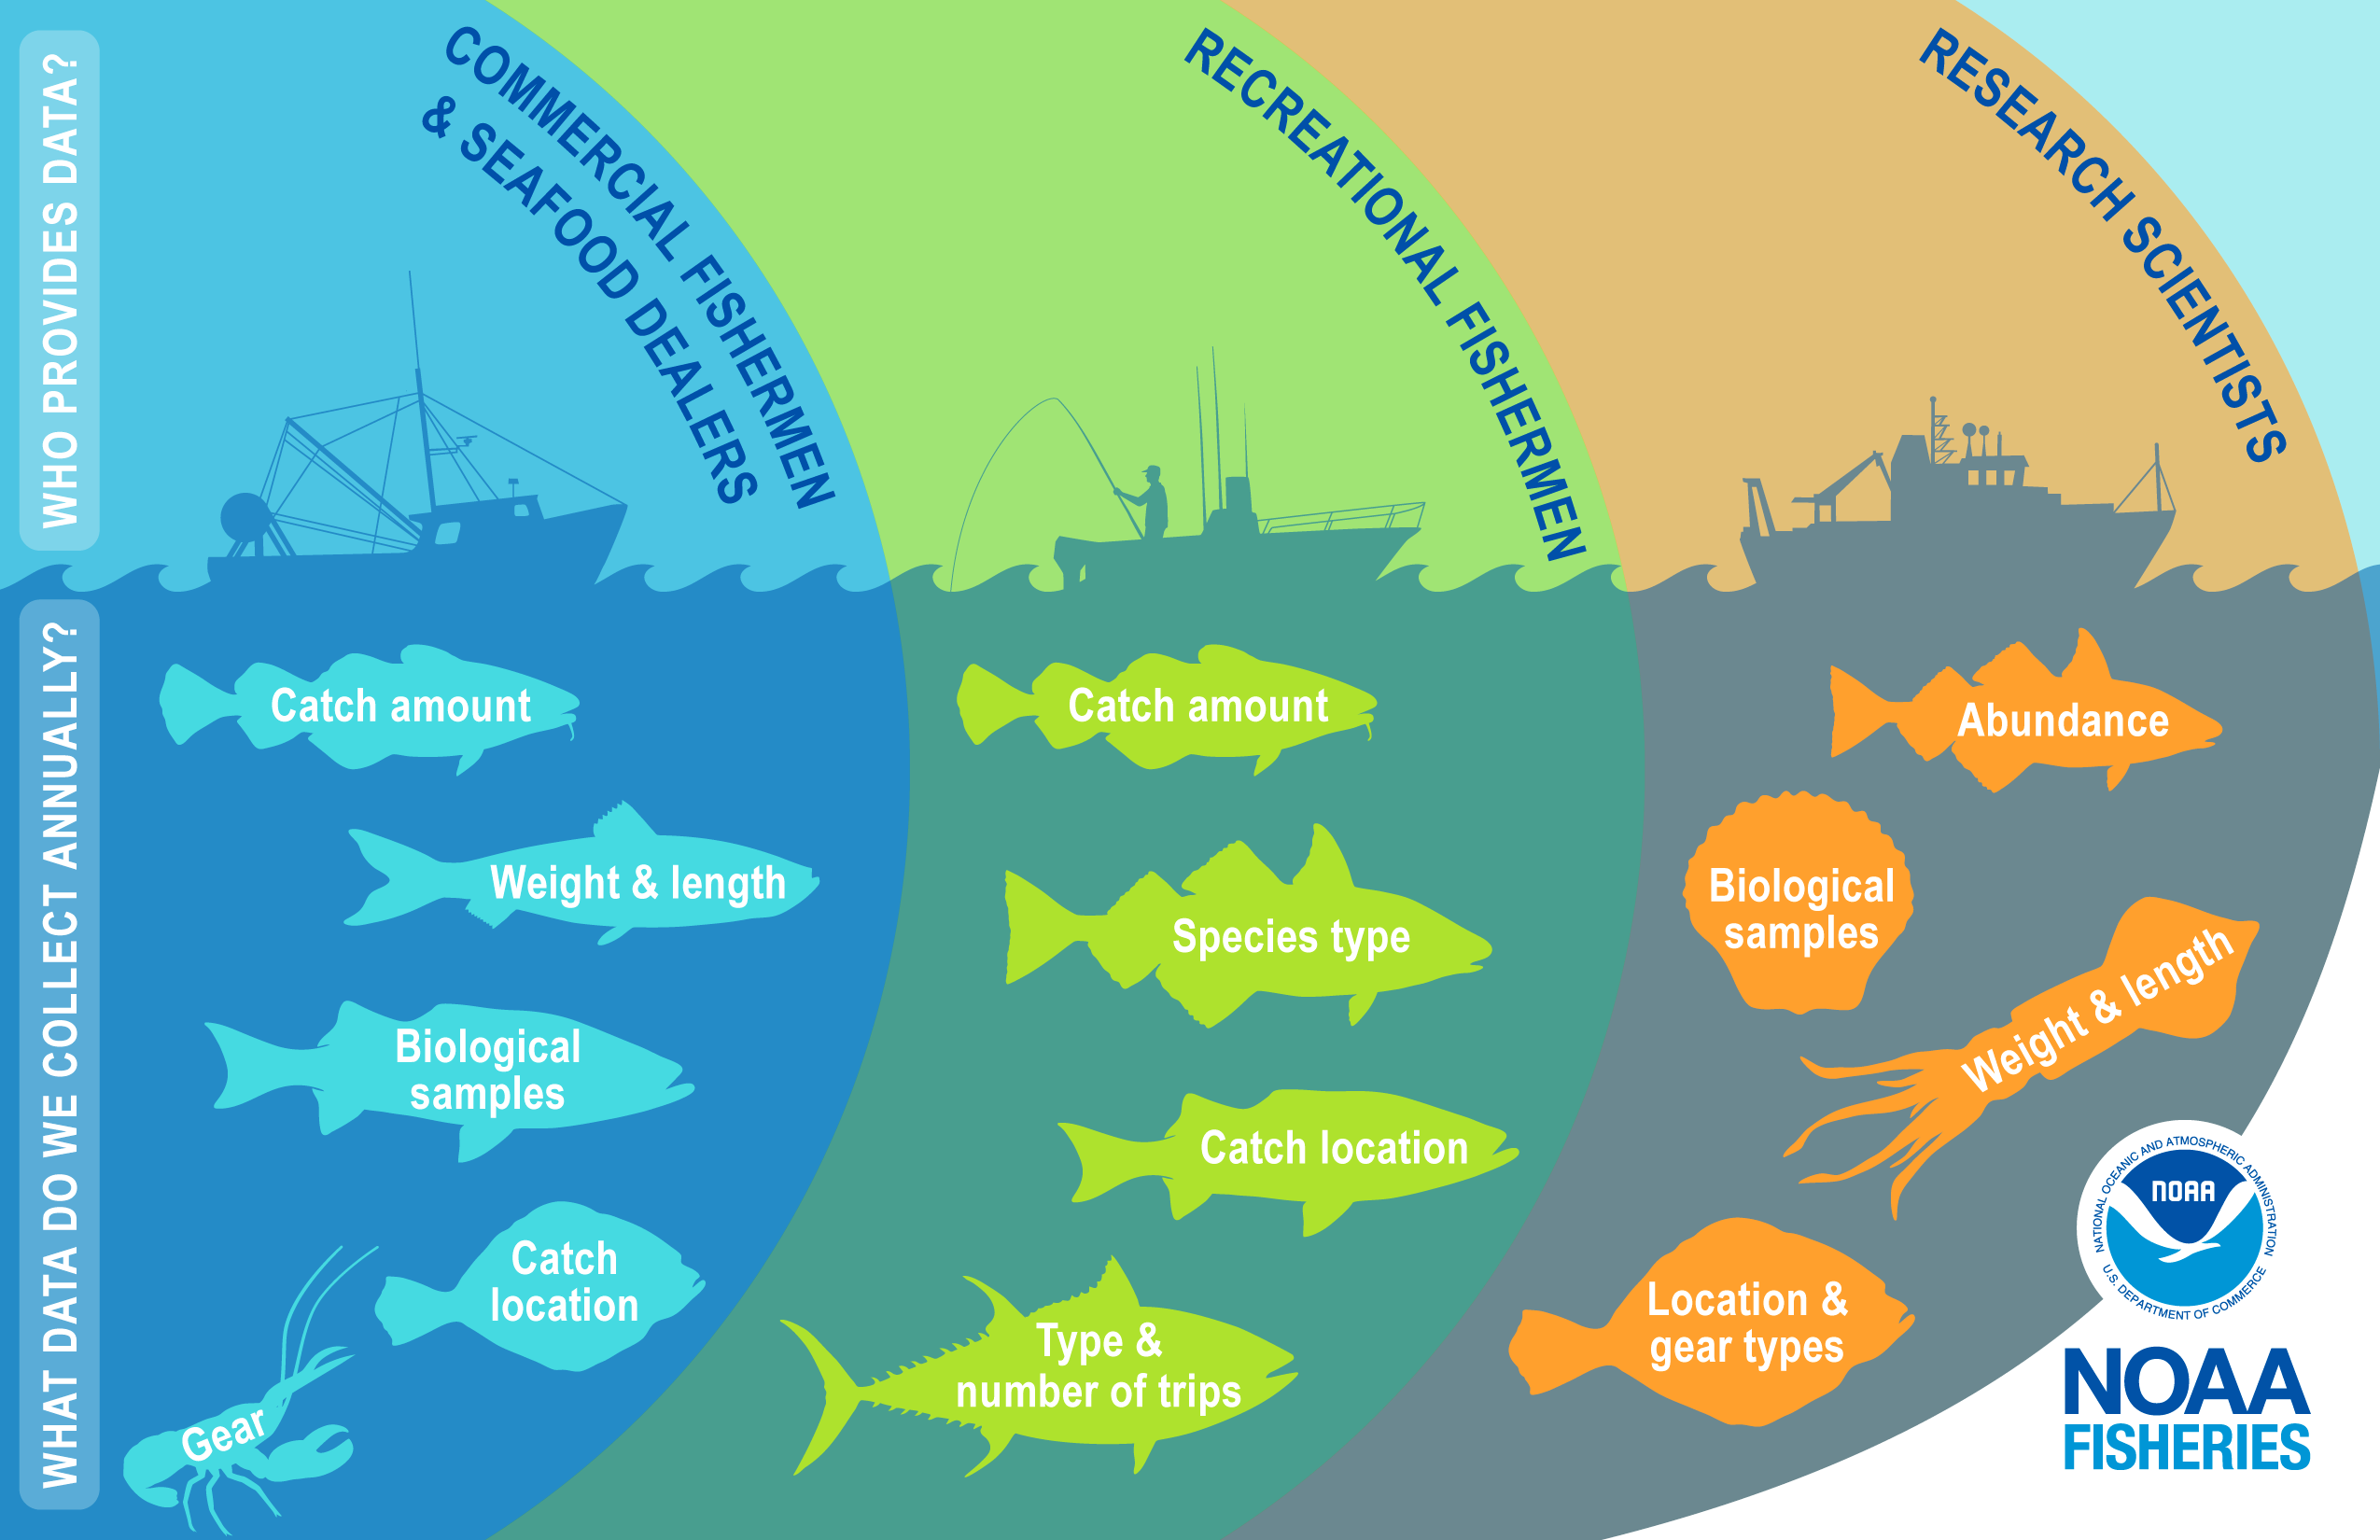 Who collects fisheries data? What data do we collect annually? This image has three sections in overlapping colored circles showing that fisheries data is collected by commercial fishers and dealers, recreational fishers, and research scientists with a corresponding drawing of a vessel silhouette for each sector. The three sections show the different types of data collected annually by each sector with icons of marine species including Atlantic cod, Atlantic herring, striped bass, flounder, lobster, black s